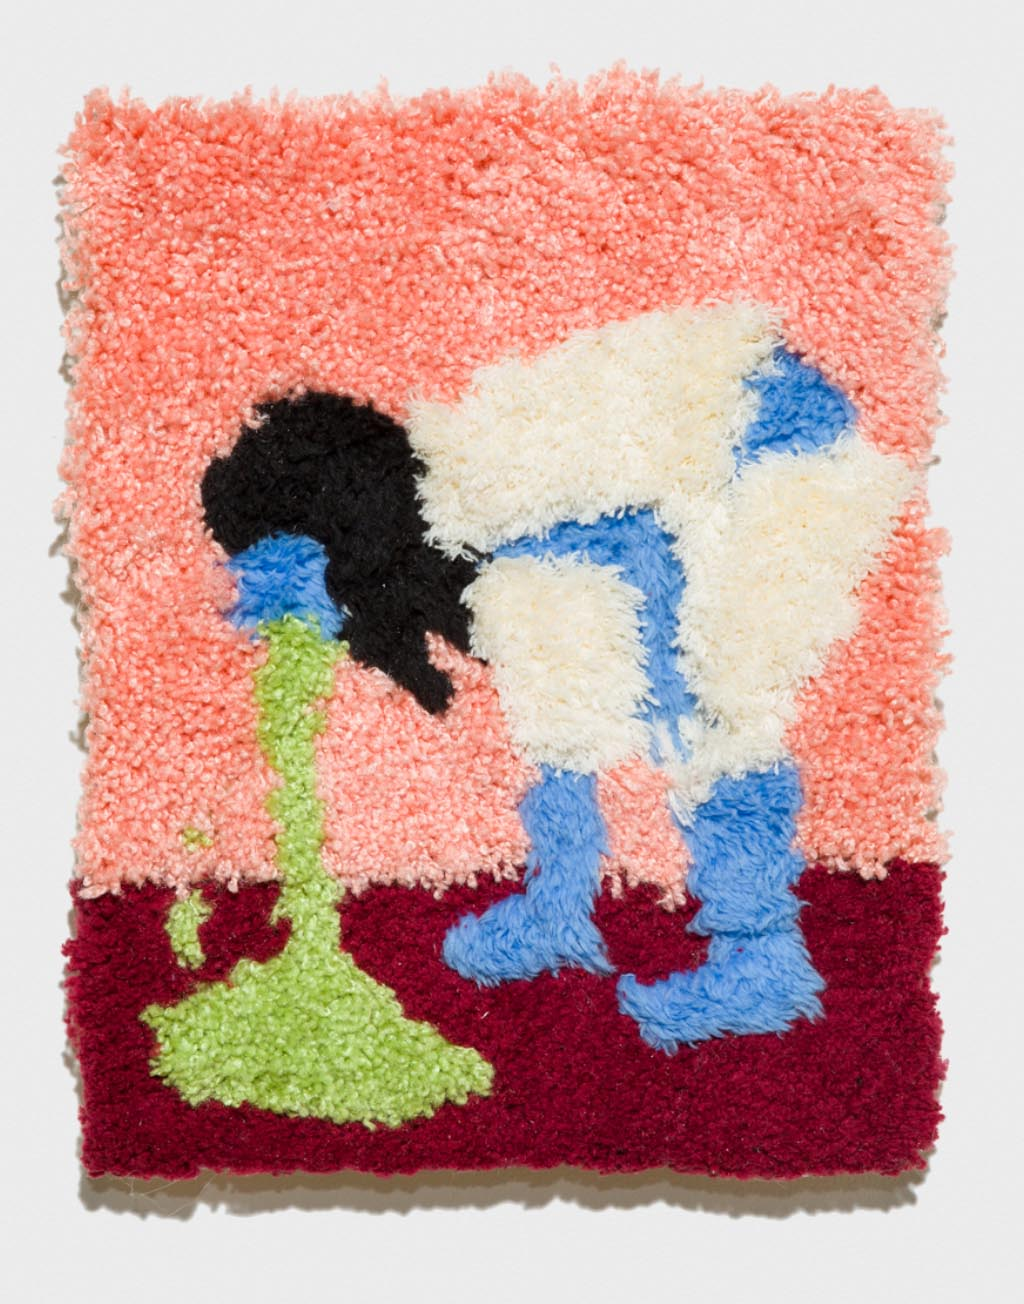 Carpet Puking 2017, acrylic rug on panel, 14 x 11 inches